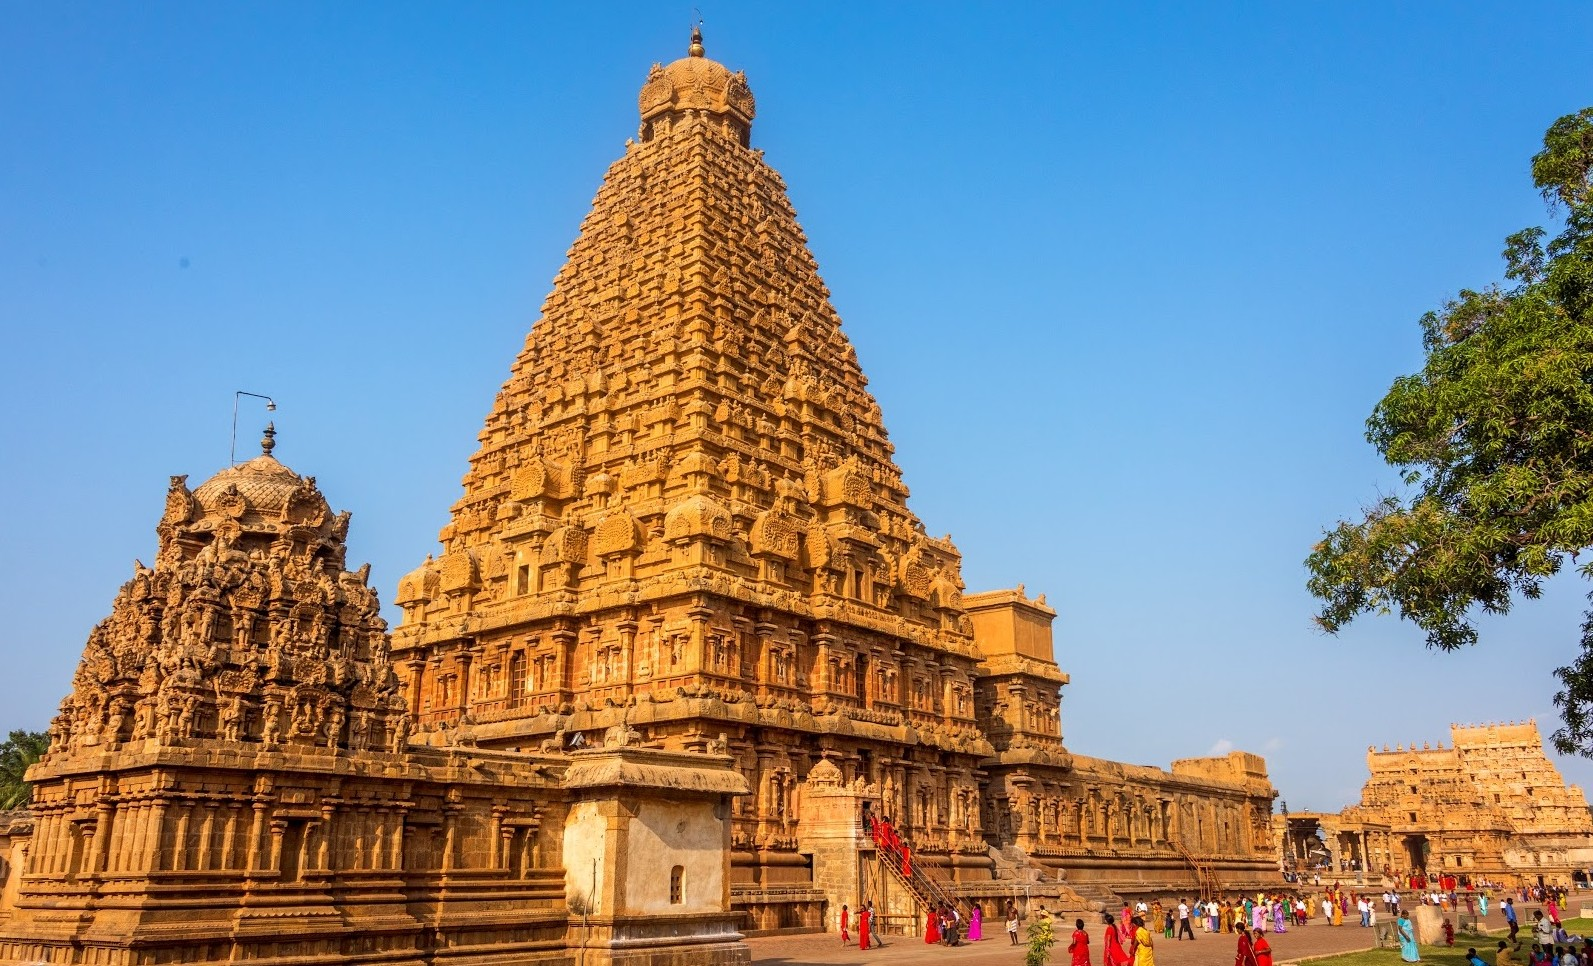 Vastu Temples And Pyramids Mystery Of India